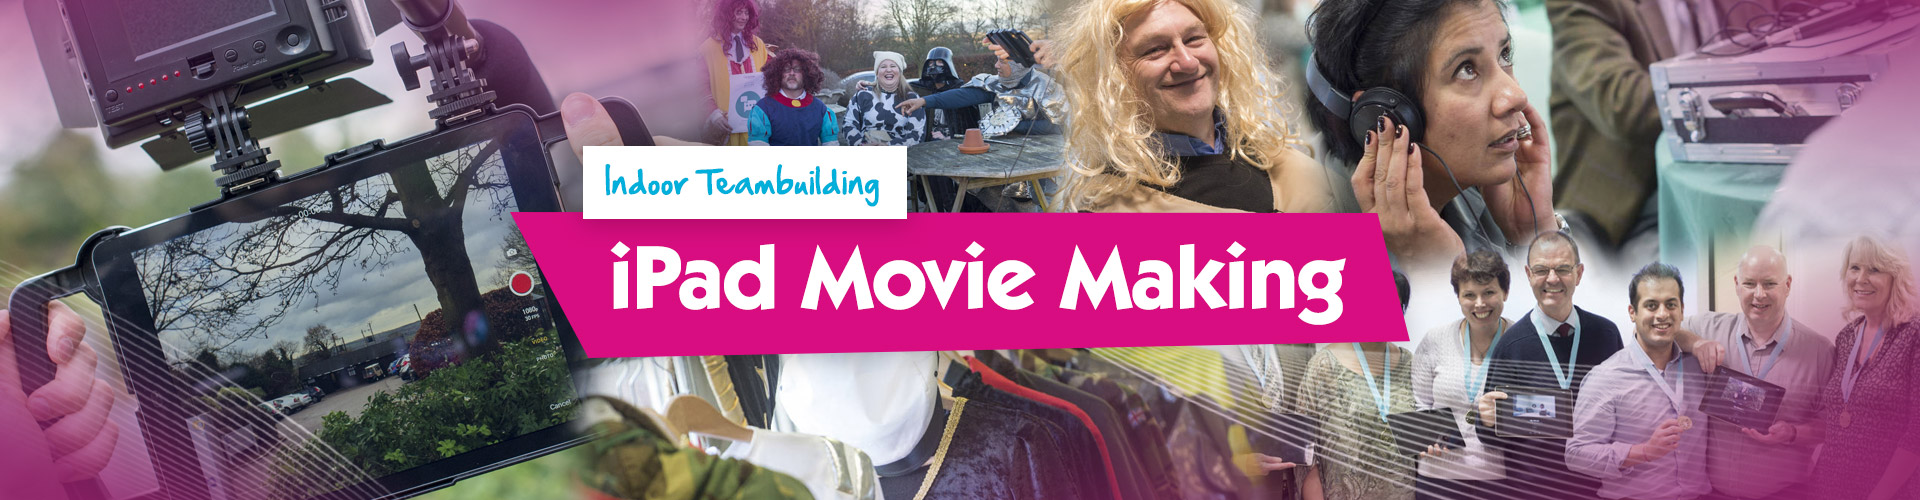 Teambuilding | Movie Making